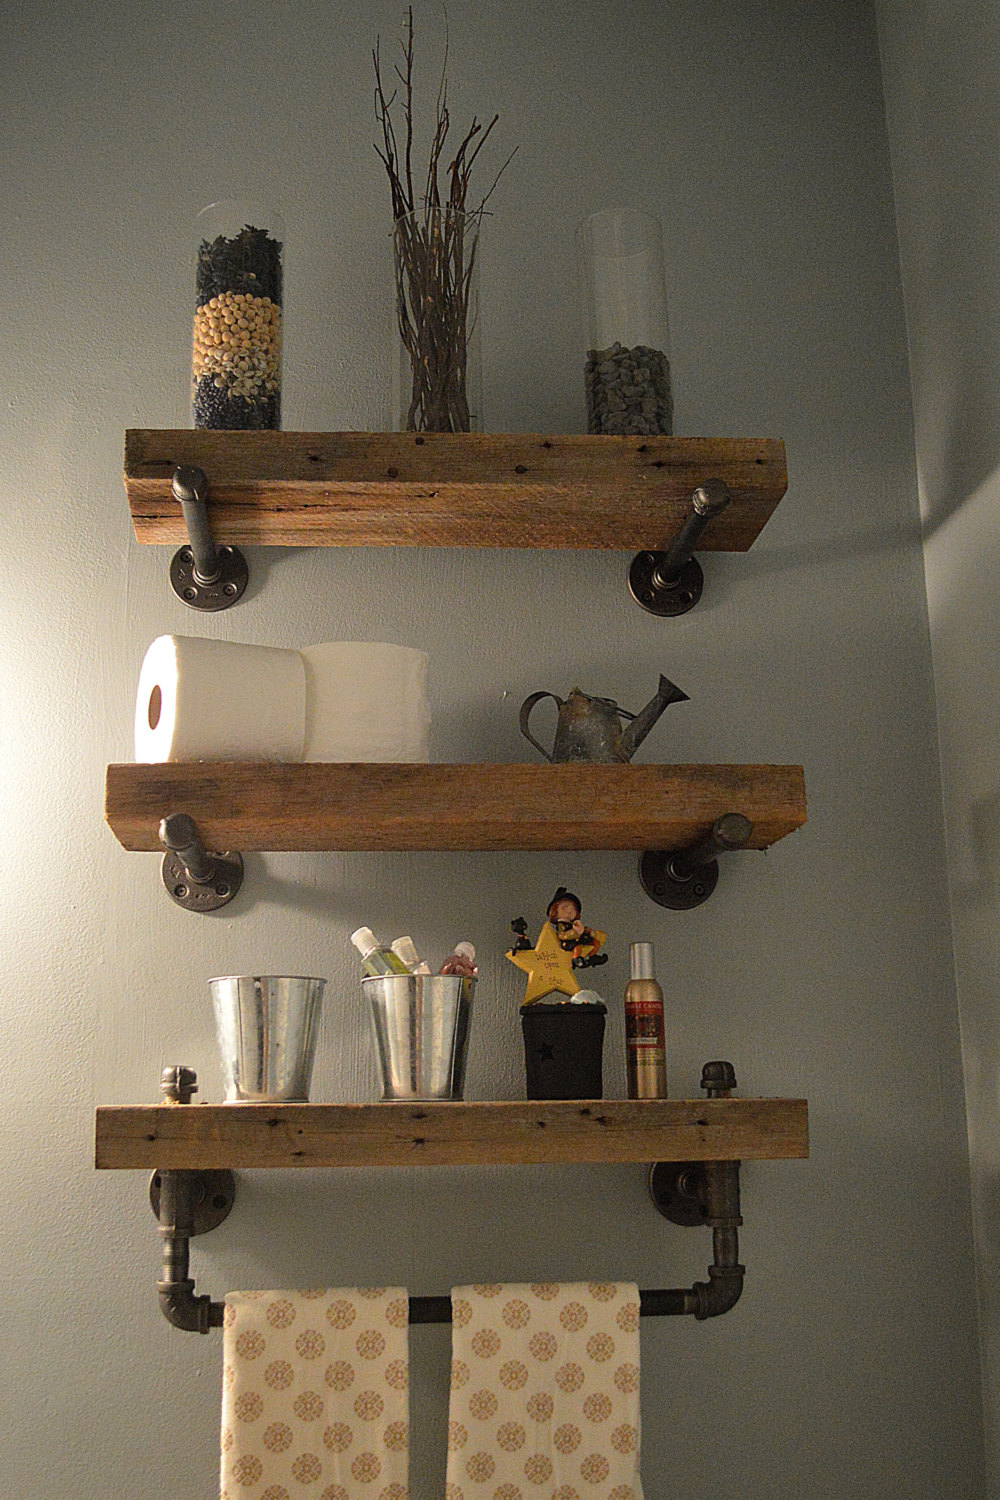 Fullsize Of Rustic Bathroom Wall Shelves